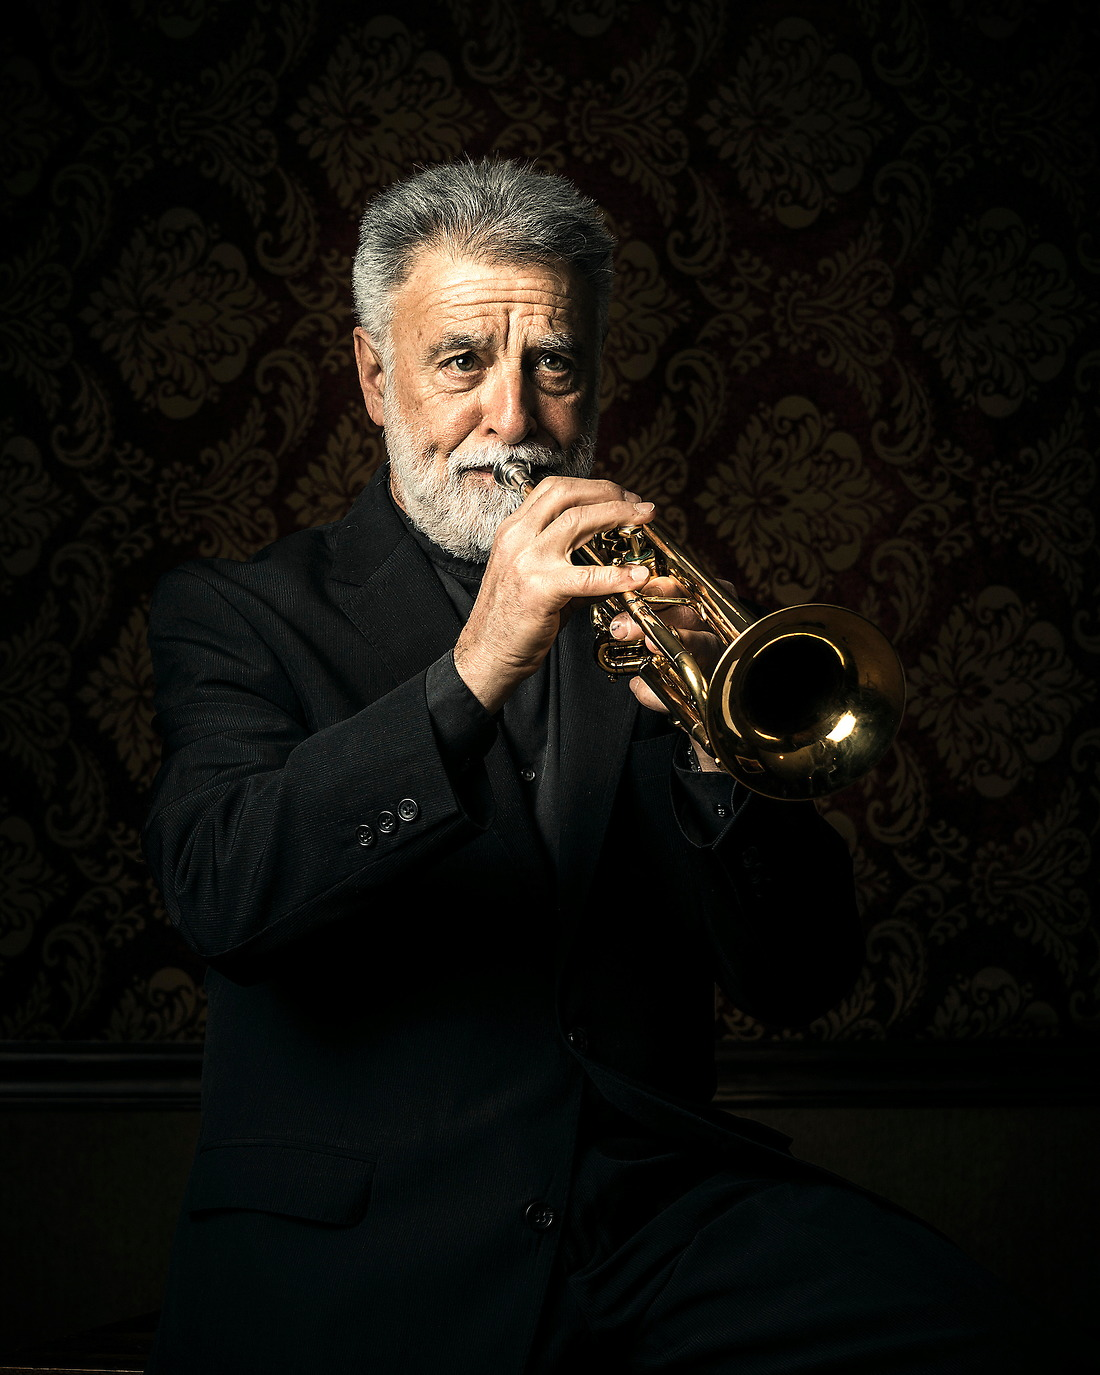 Marvin Stamm International Jazz Trumpet Soloist / Clinician. — © Jeremy Lock/